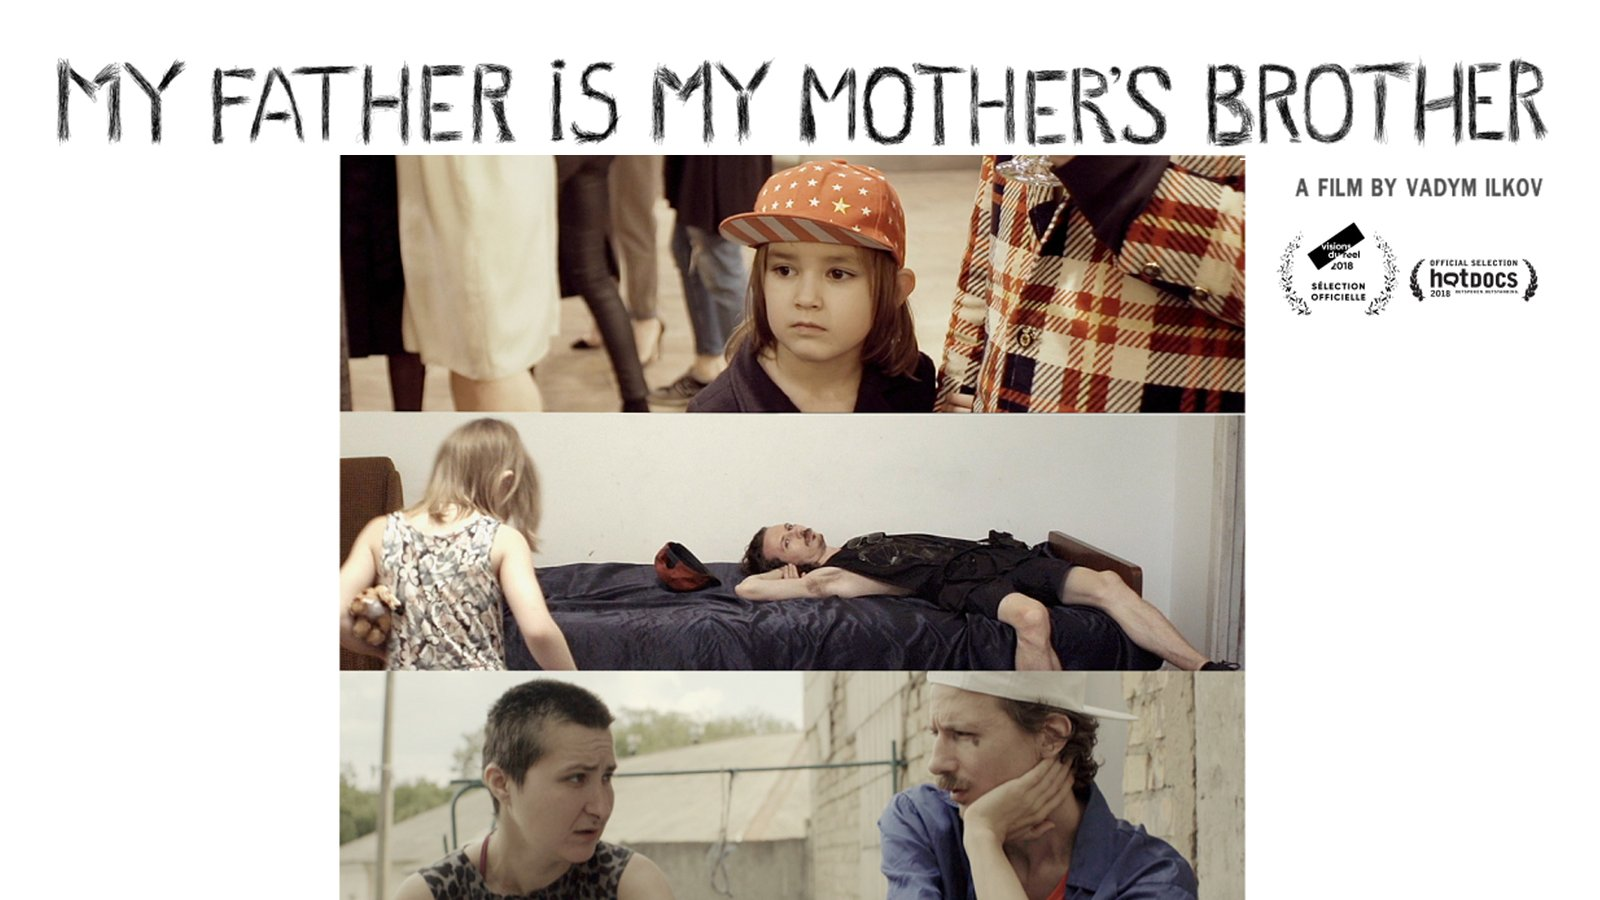 My Father Is My Mother's Brother